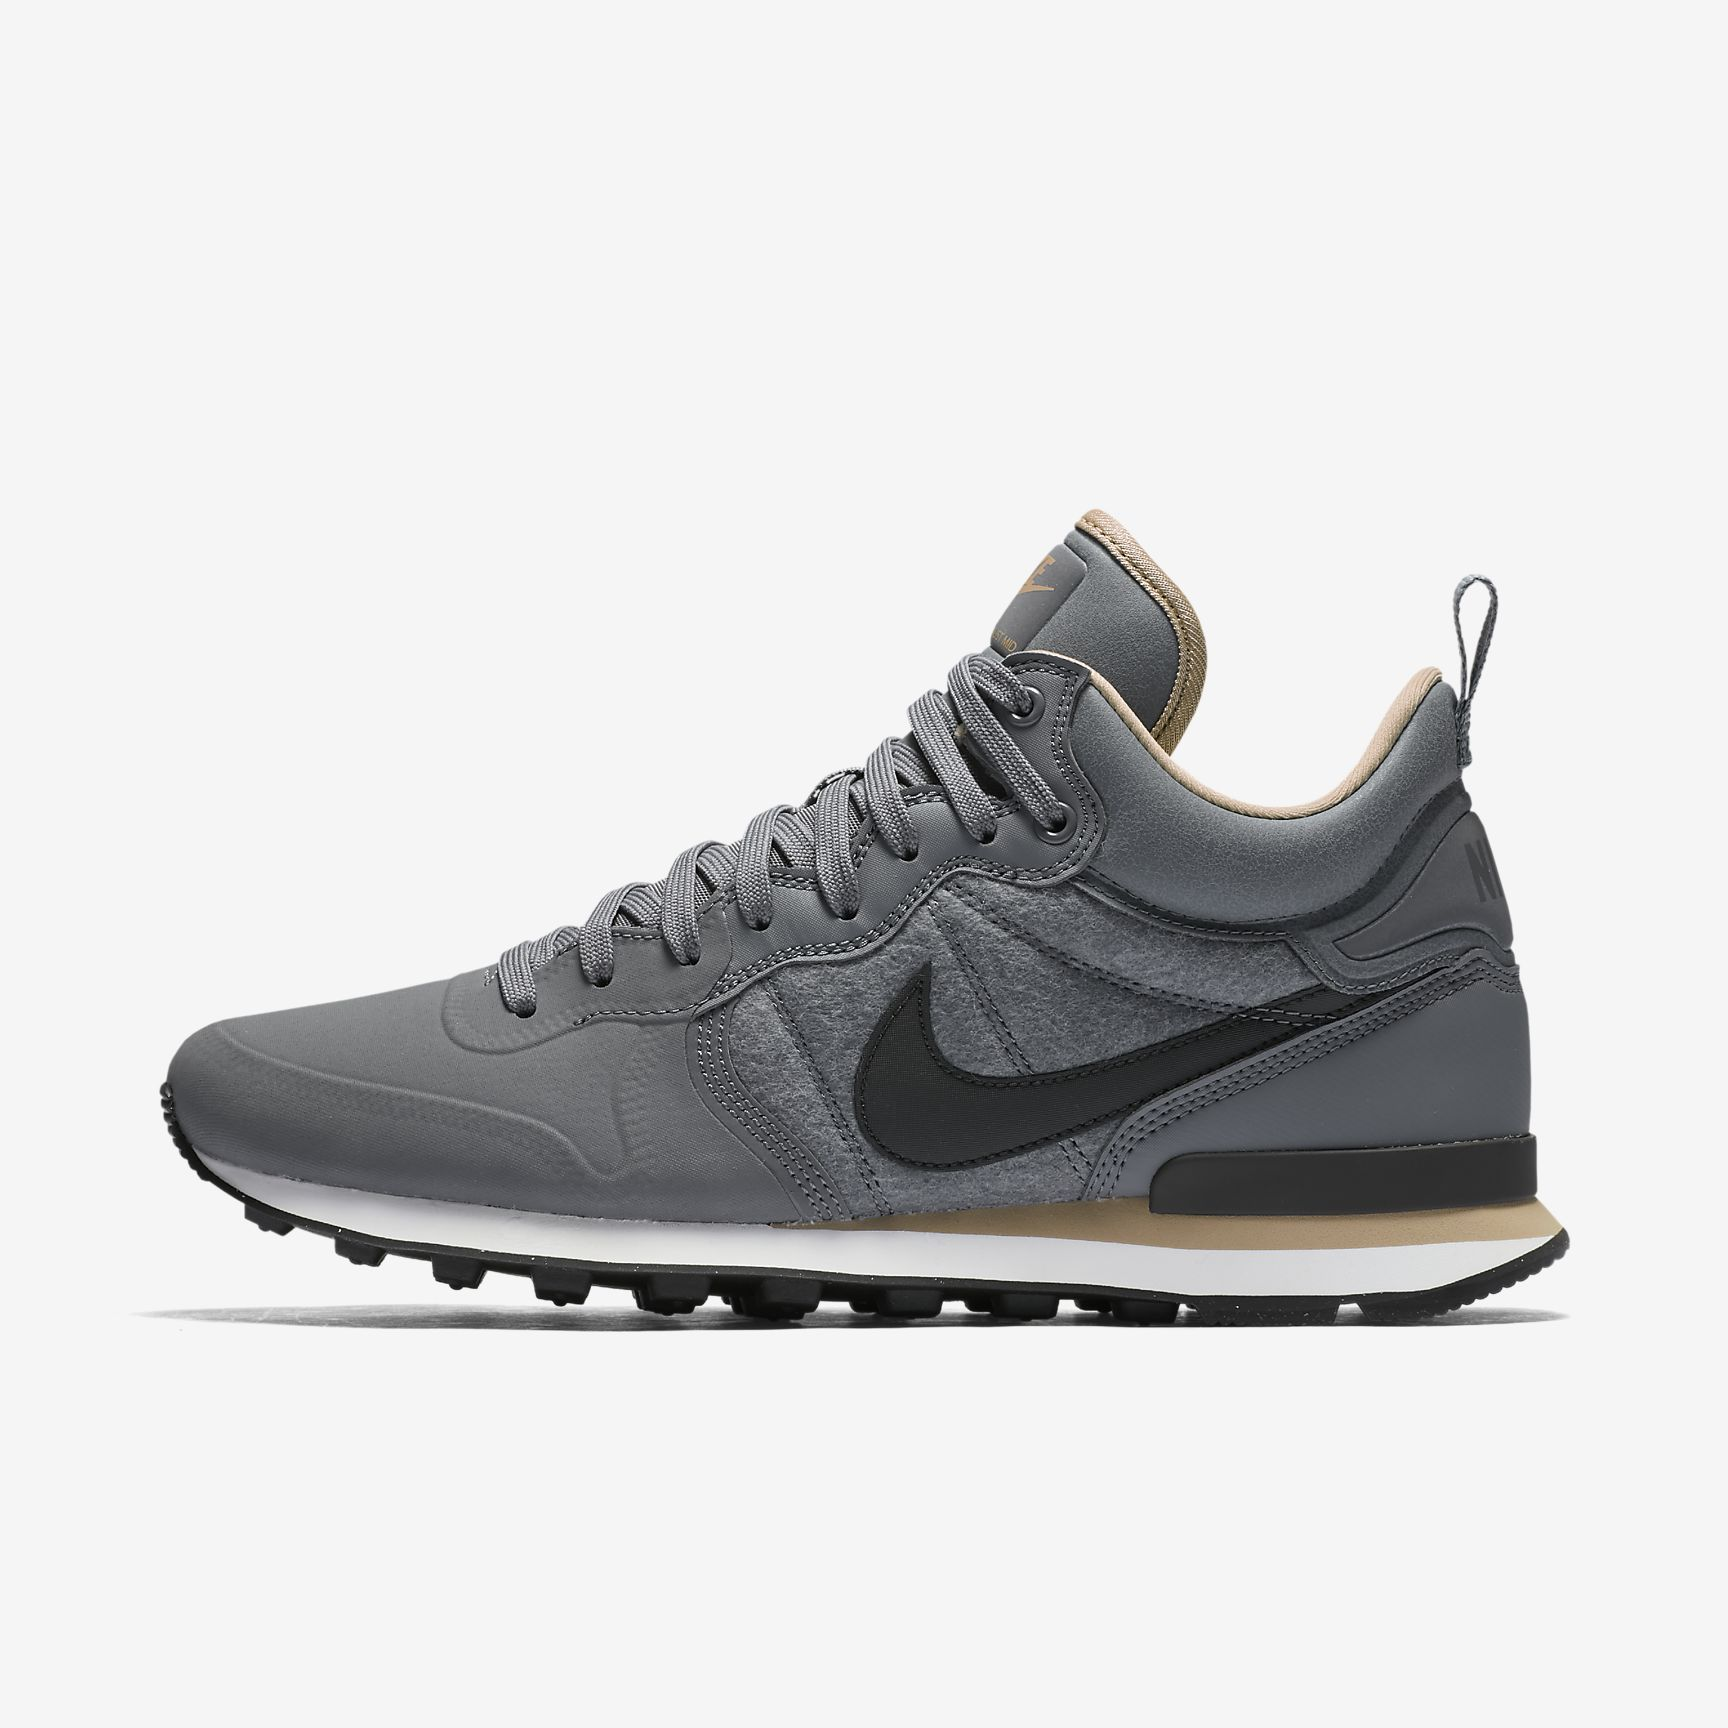 detailed look 6a721 88b20 Nike Internationalist Utility Men s Shoe